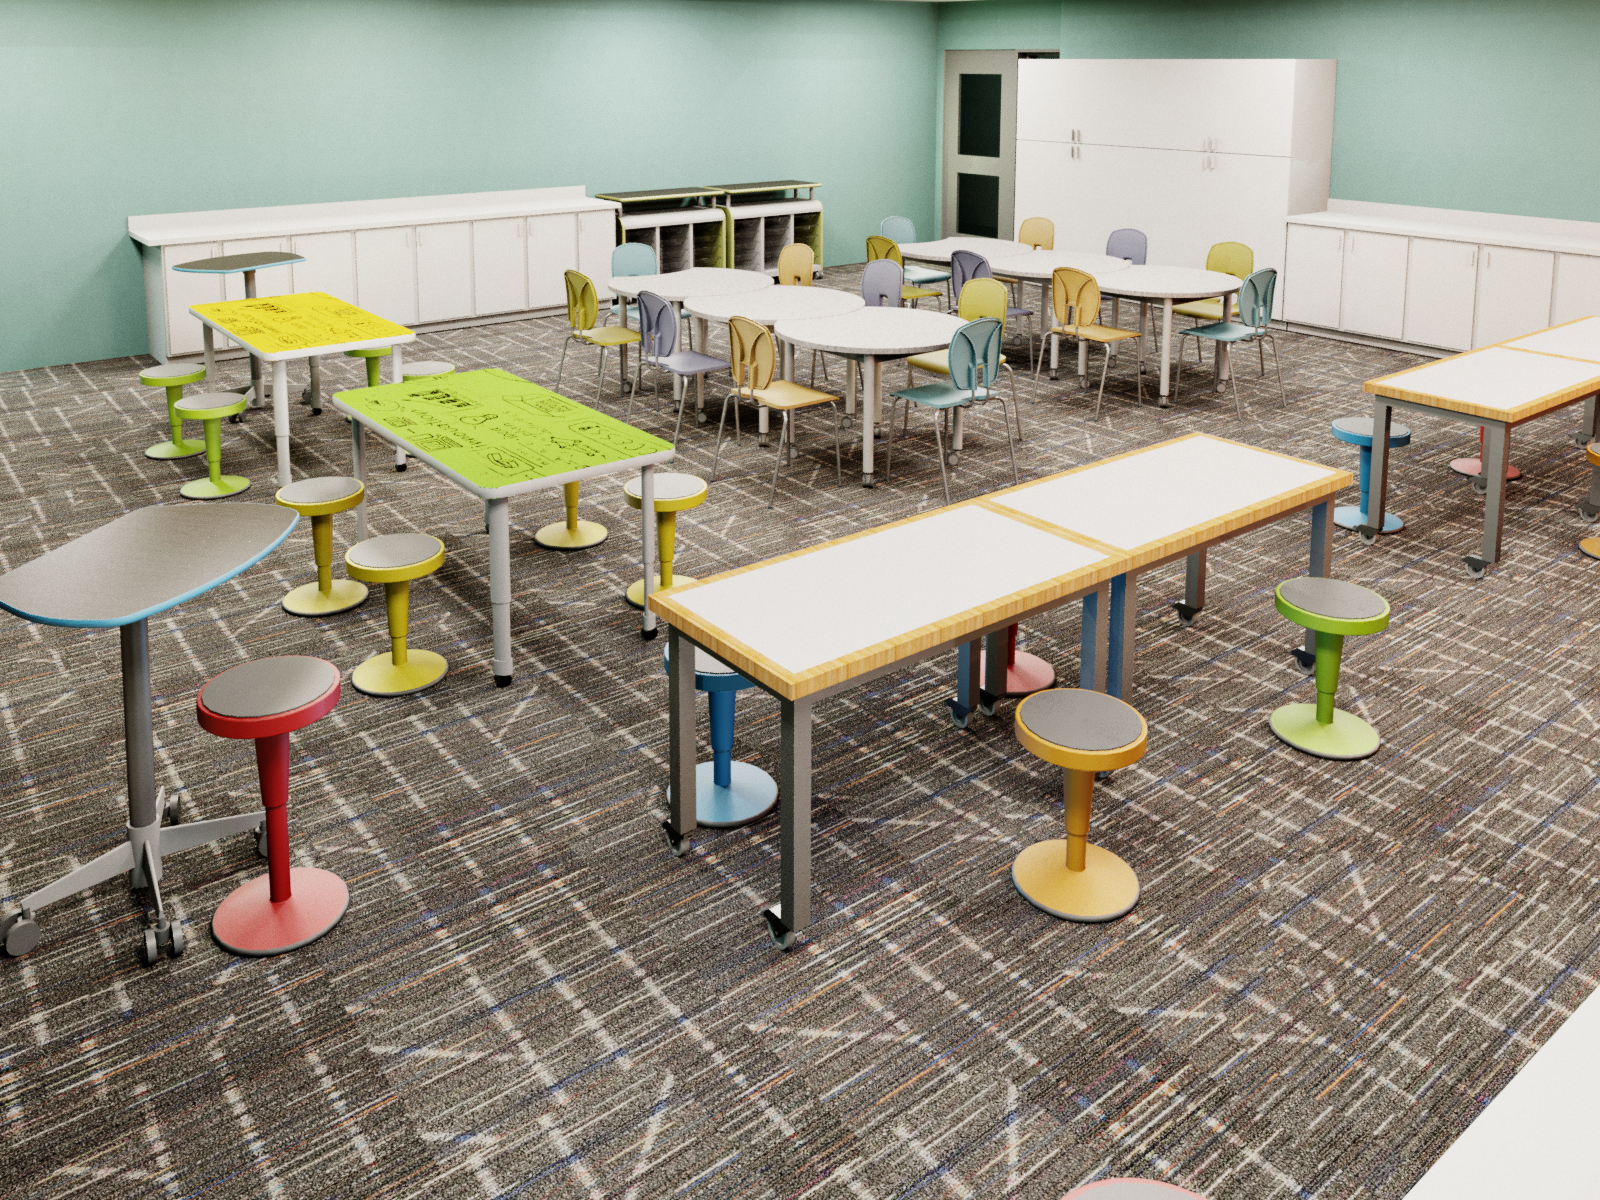 Flexible makerspace learning environment